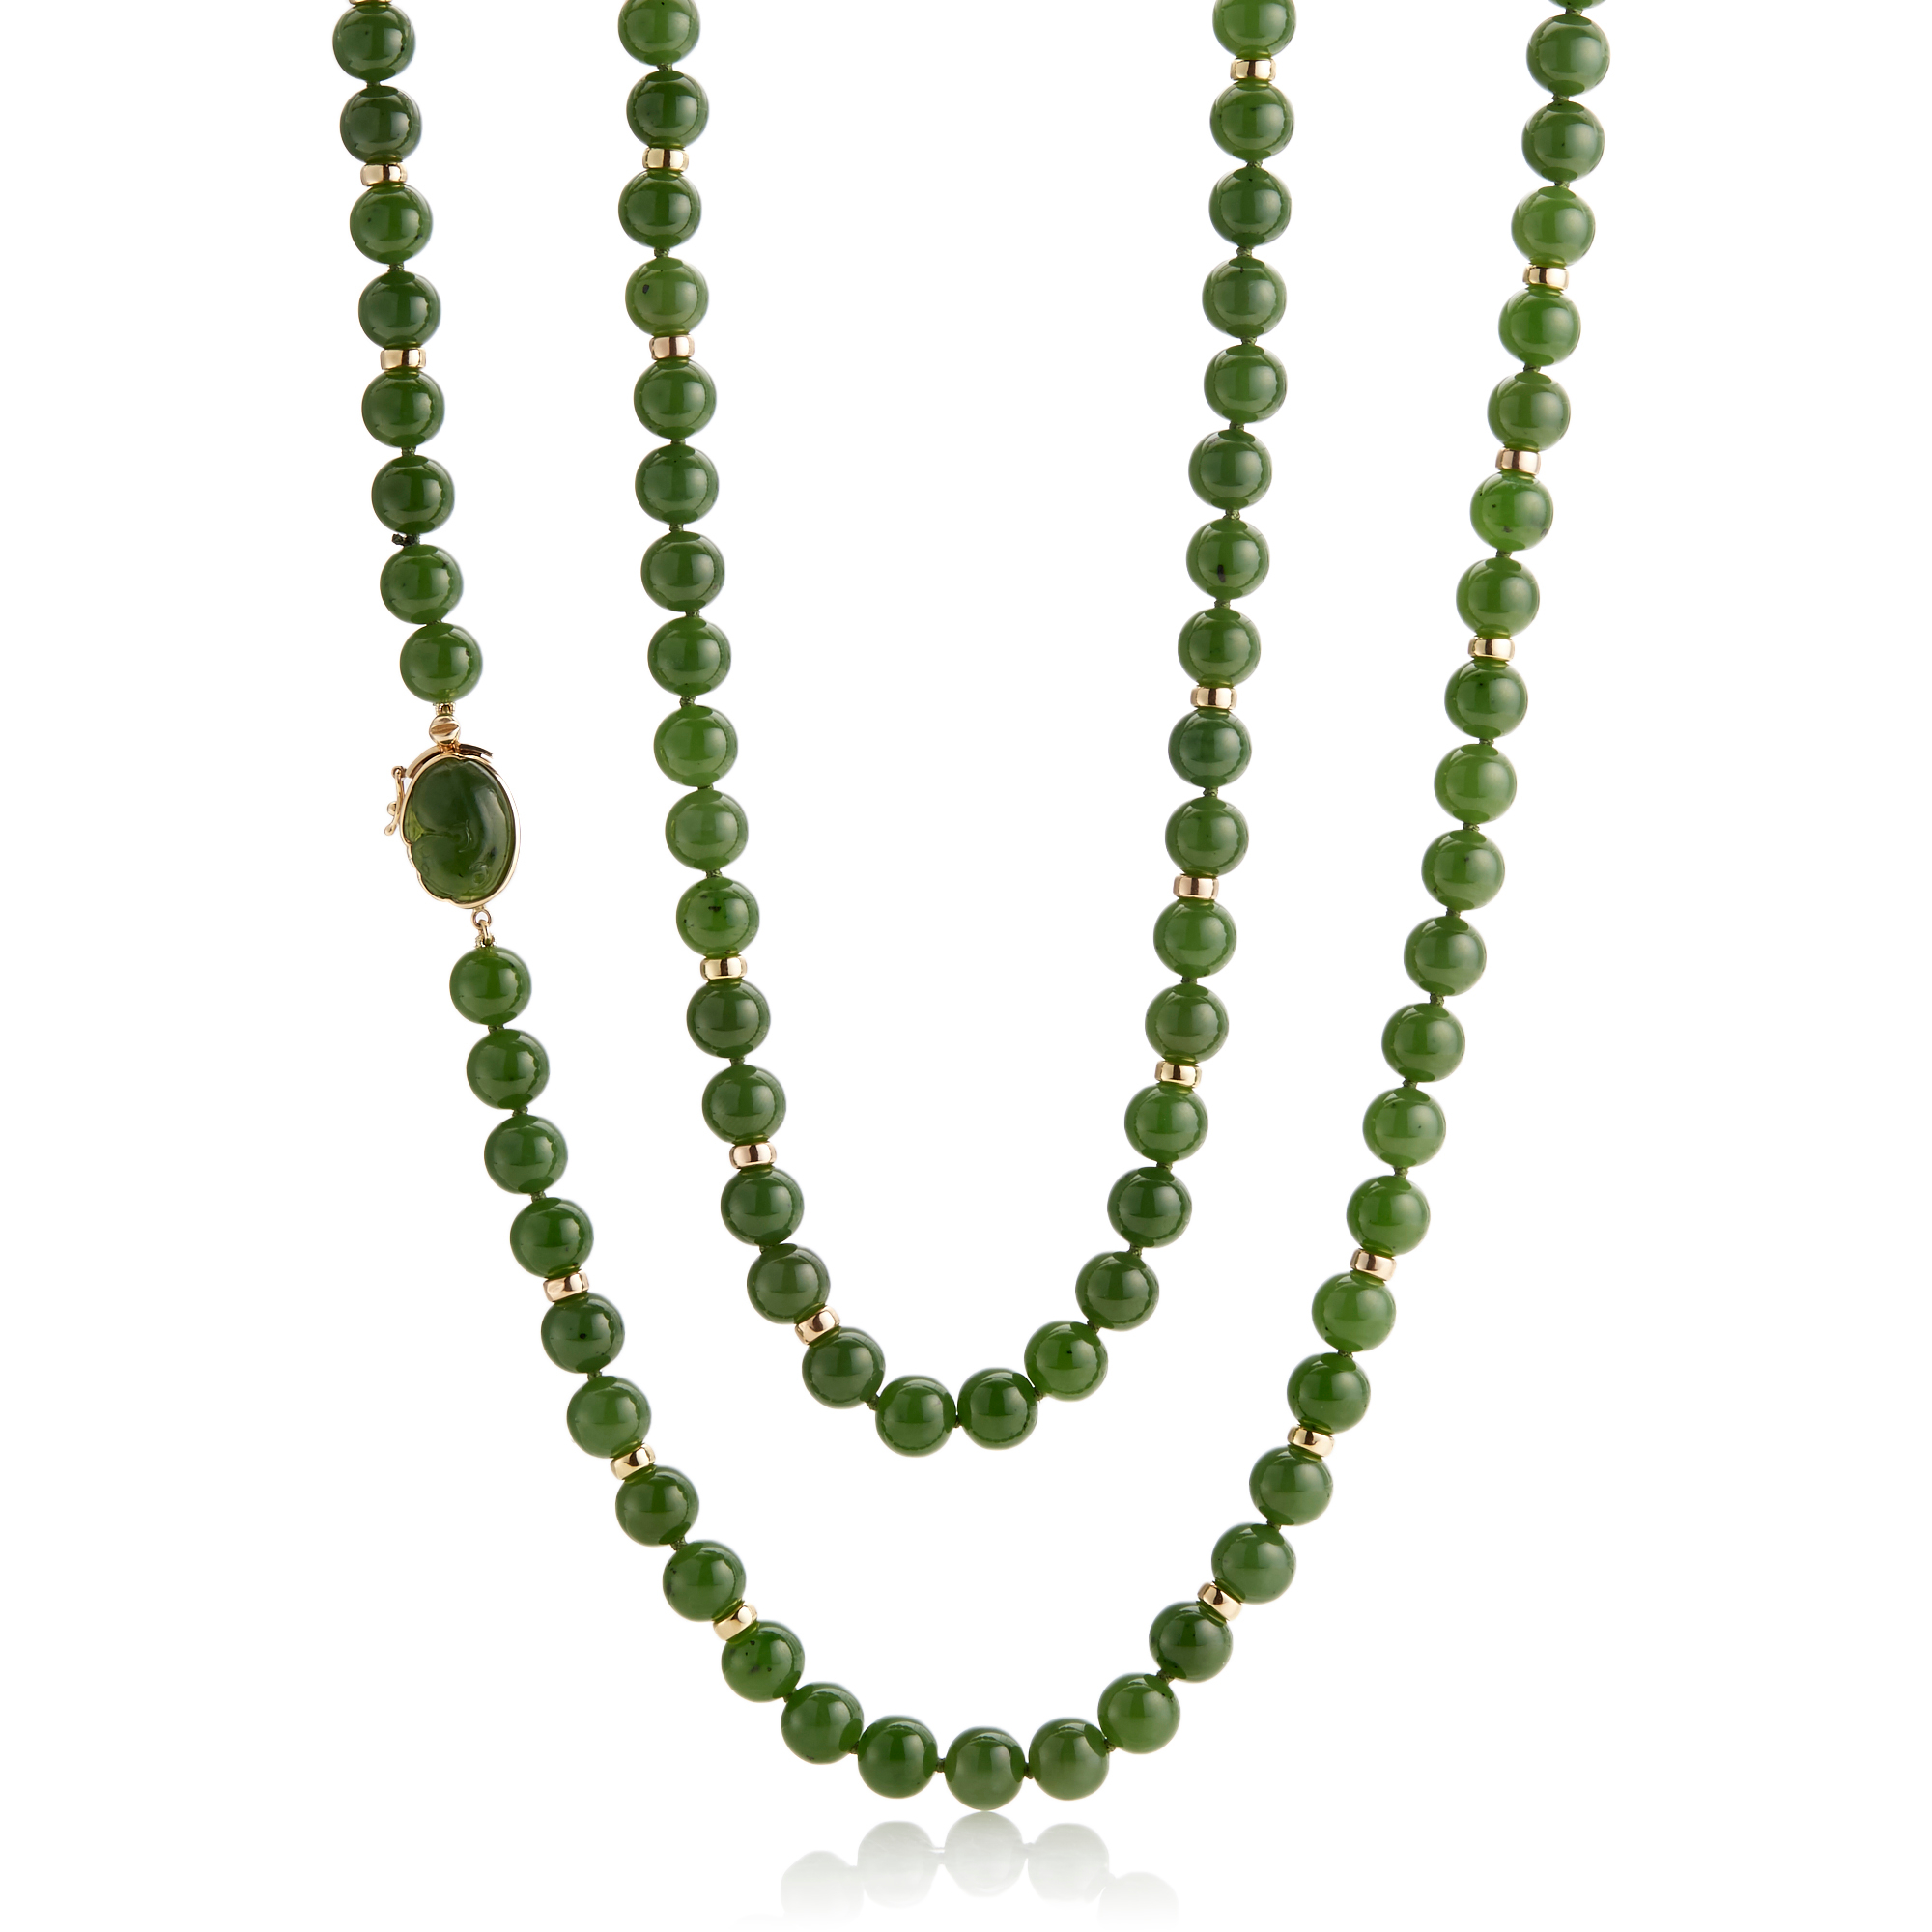 Gump's Green Nephrite Jade & Gold Rondelle Necklace